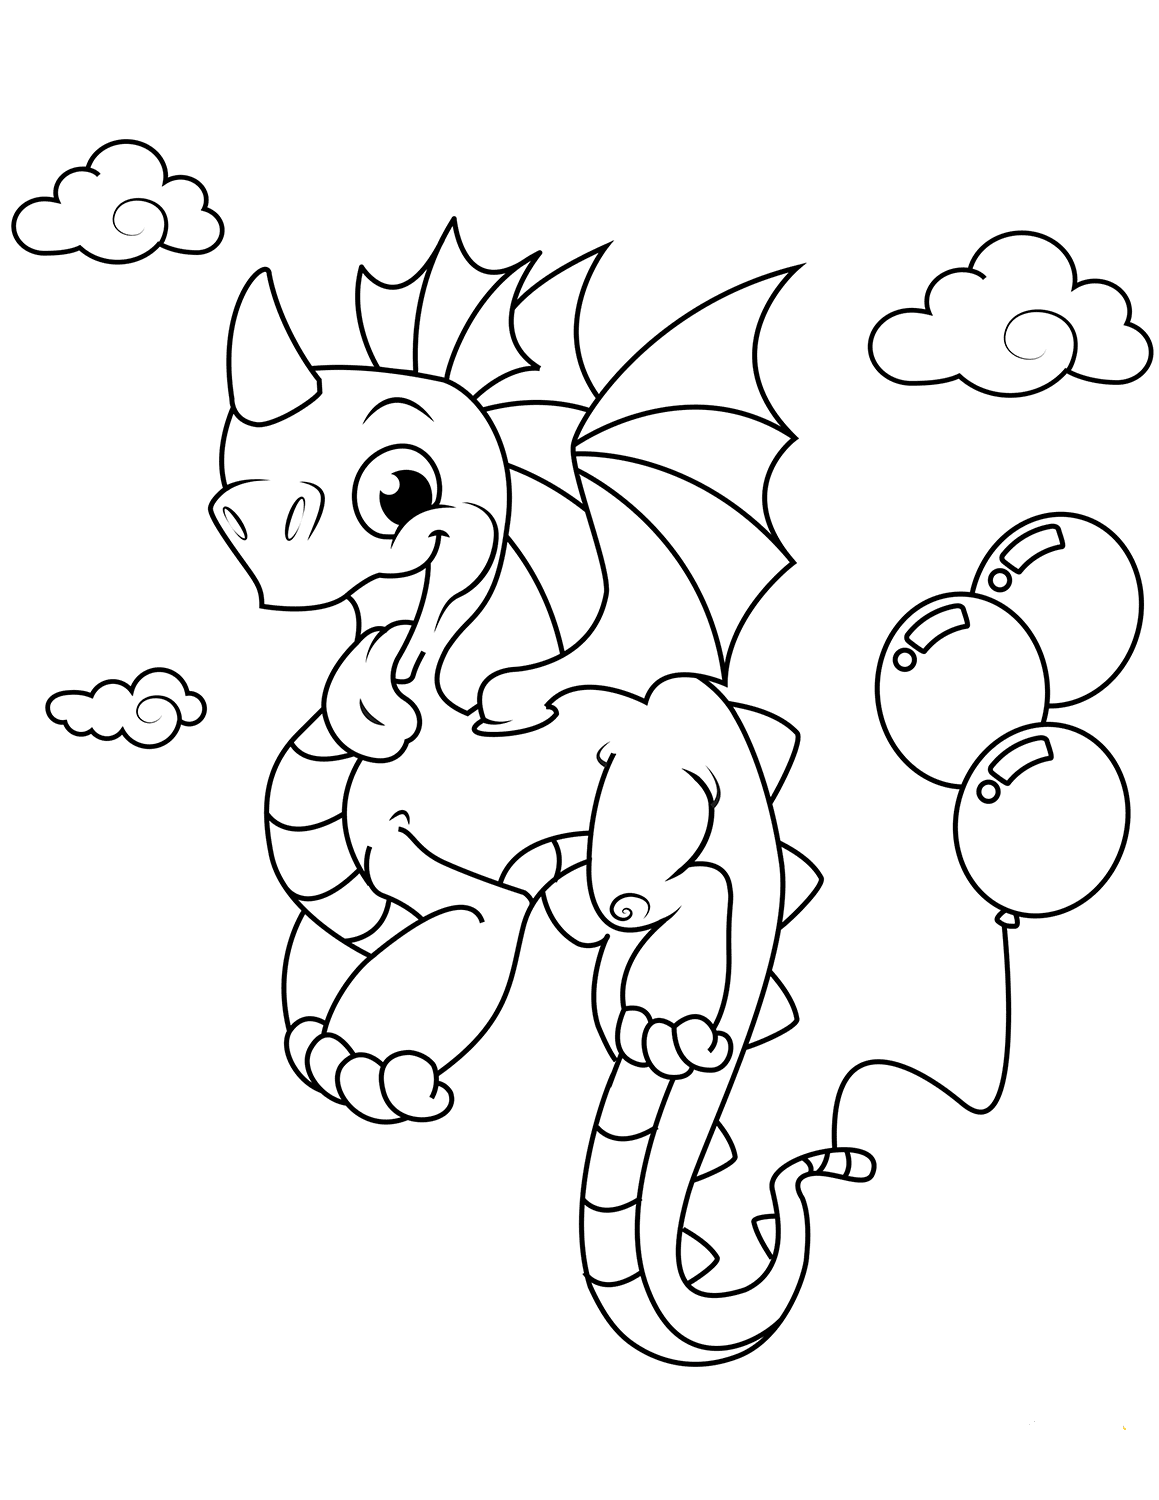 Dragon With Balloons Coloring Page